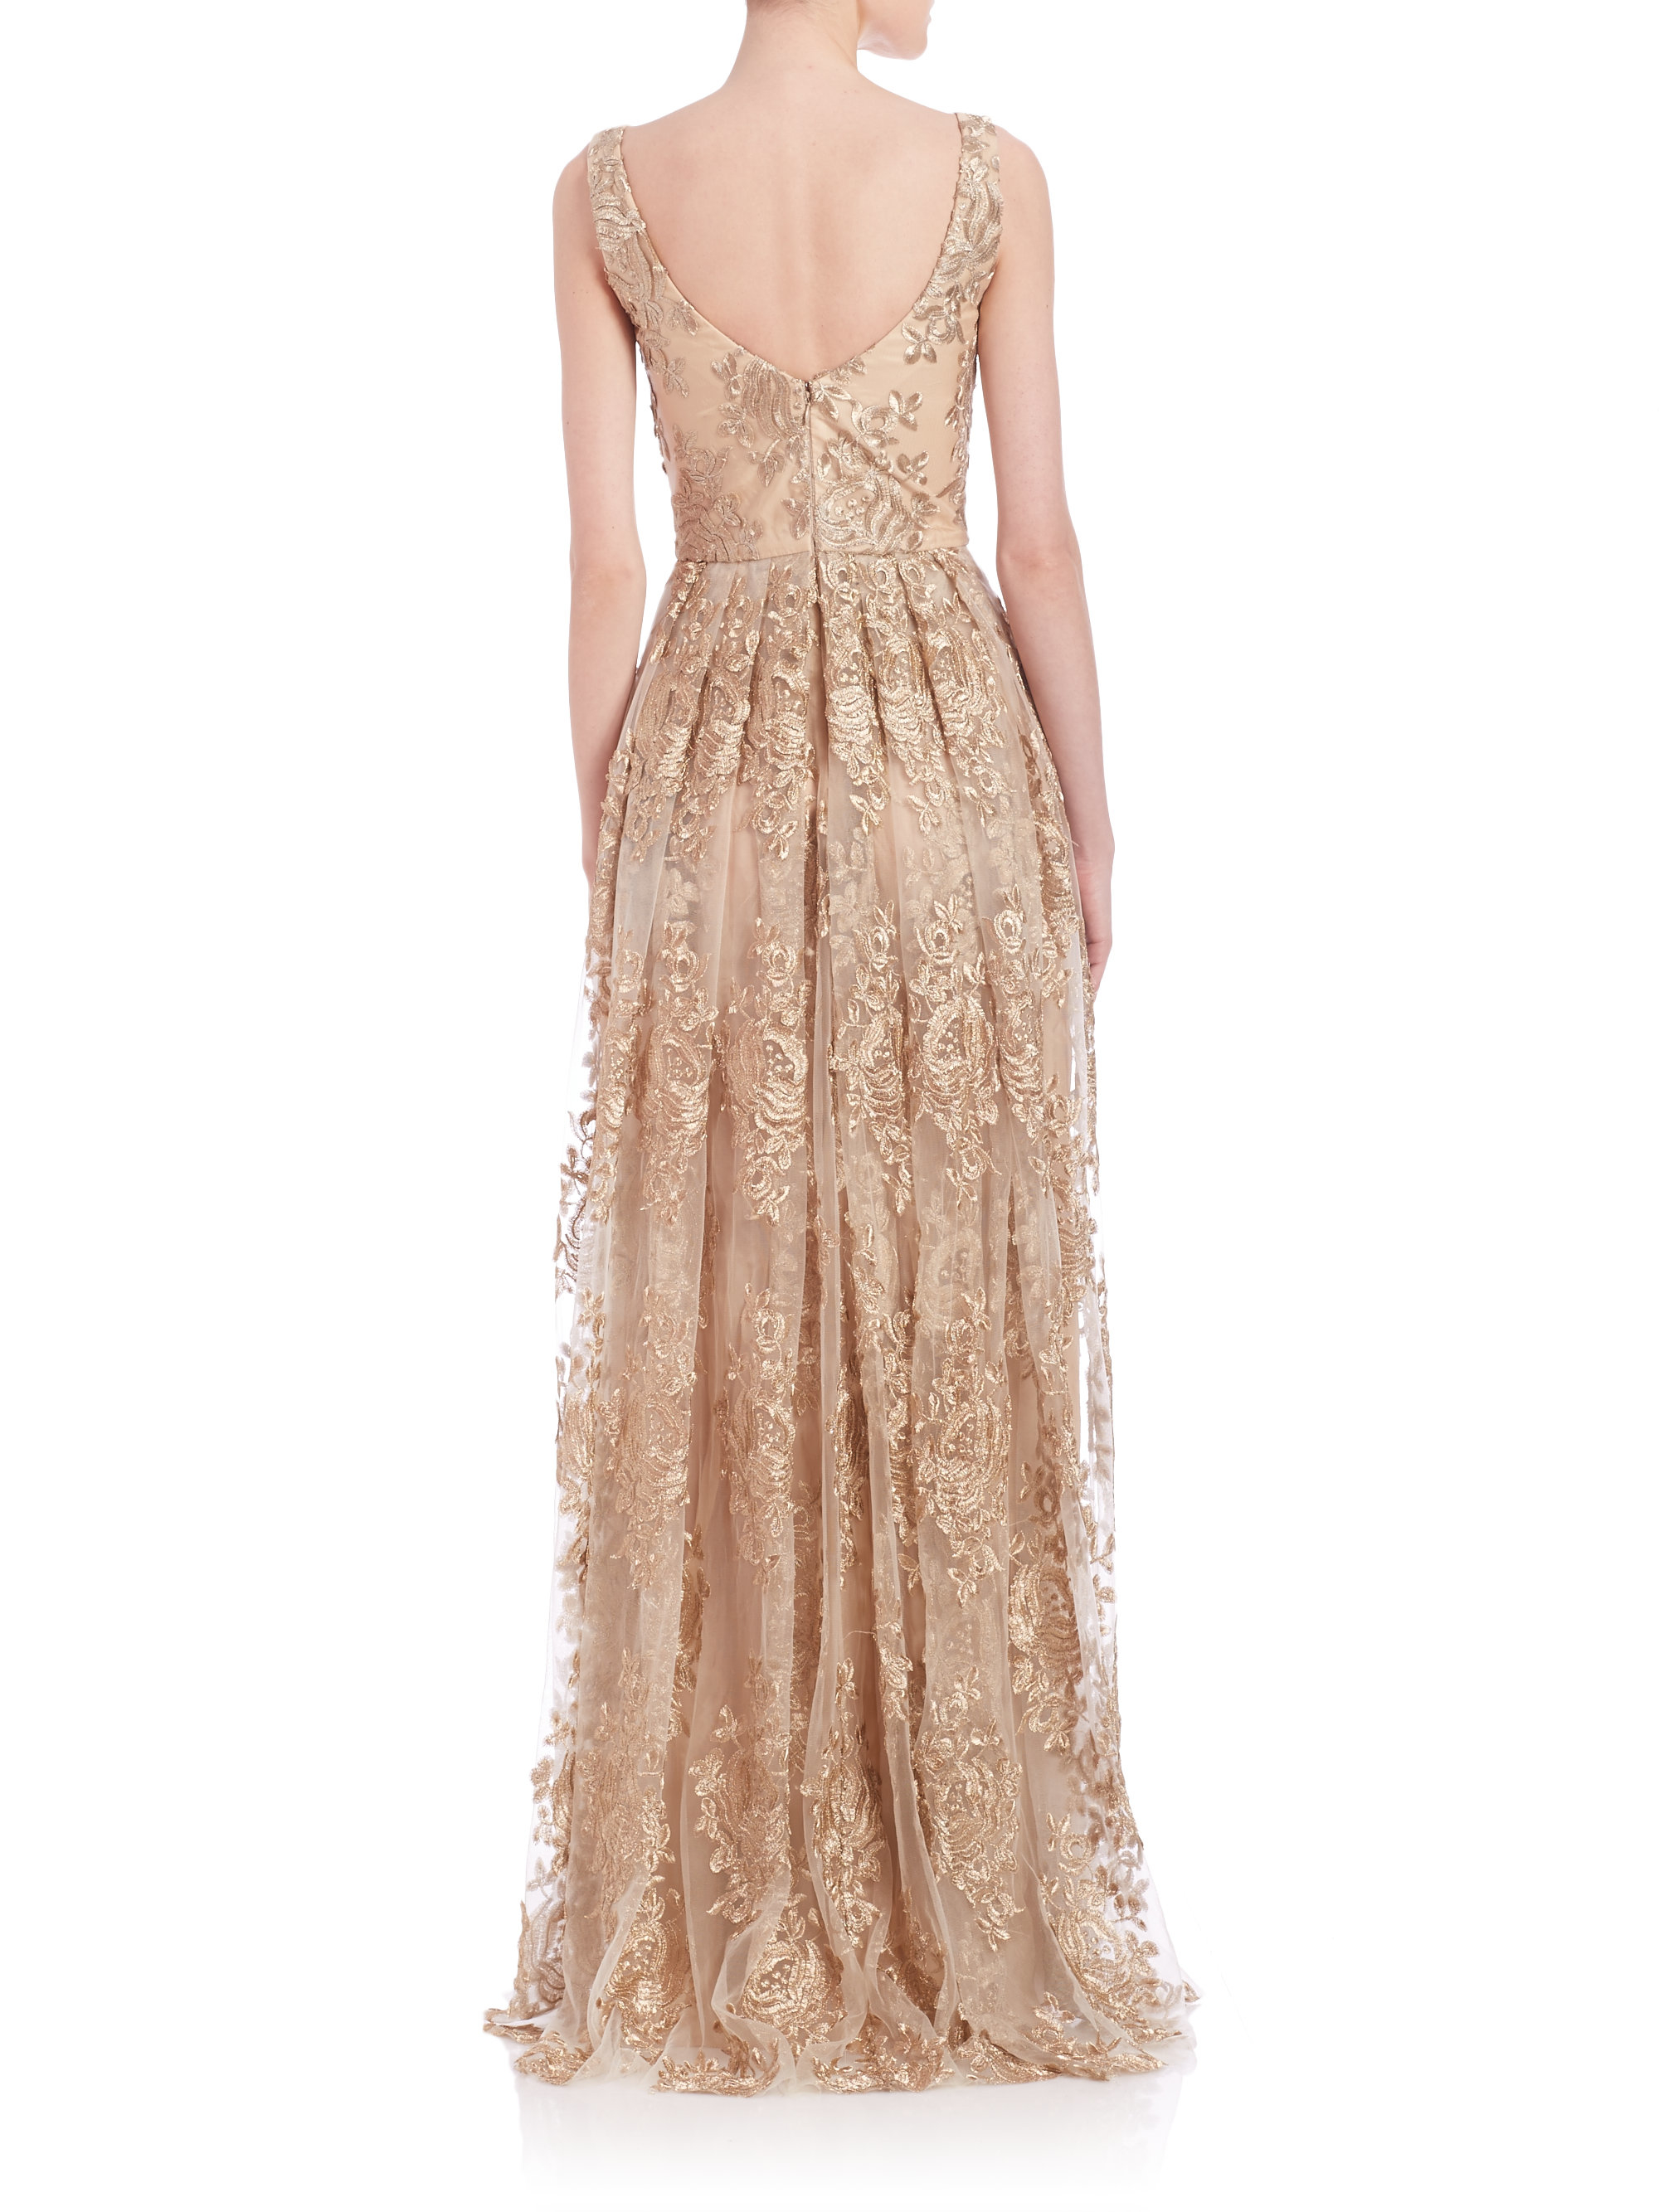 Lyst - Theia Embroidered Gown in Metallic